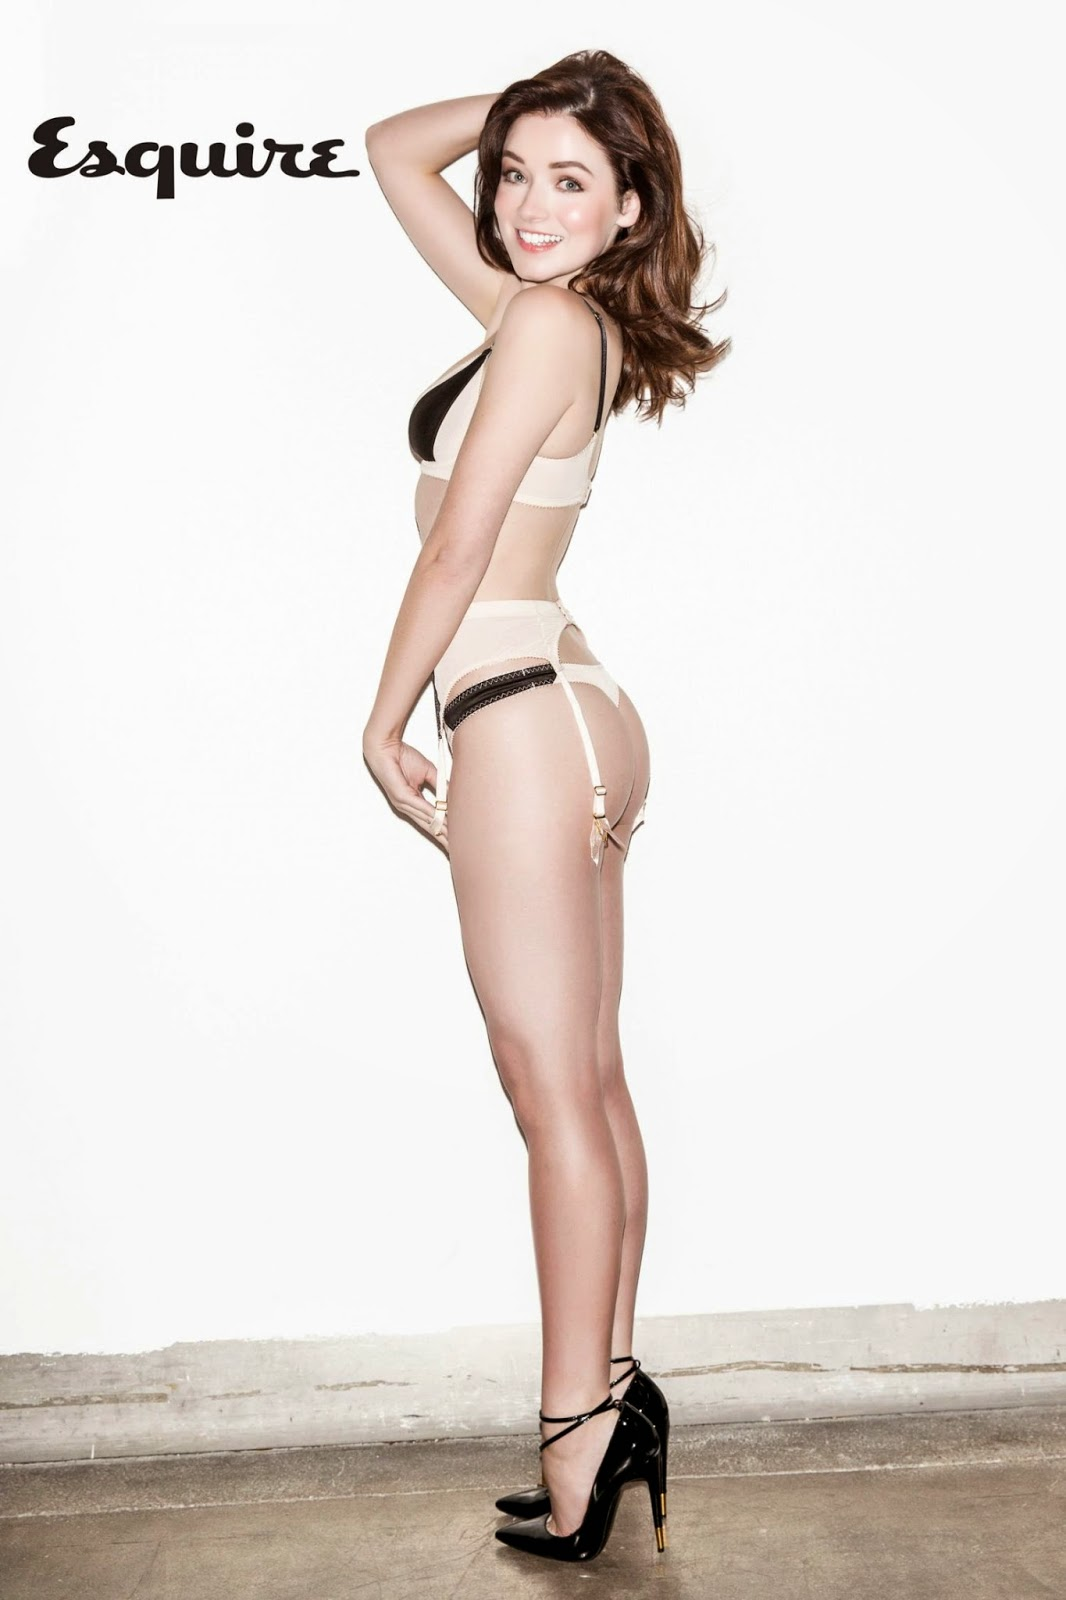 sarah-bolger-in-esquire-magazine-march-2015-1